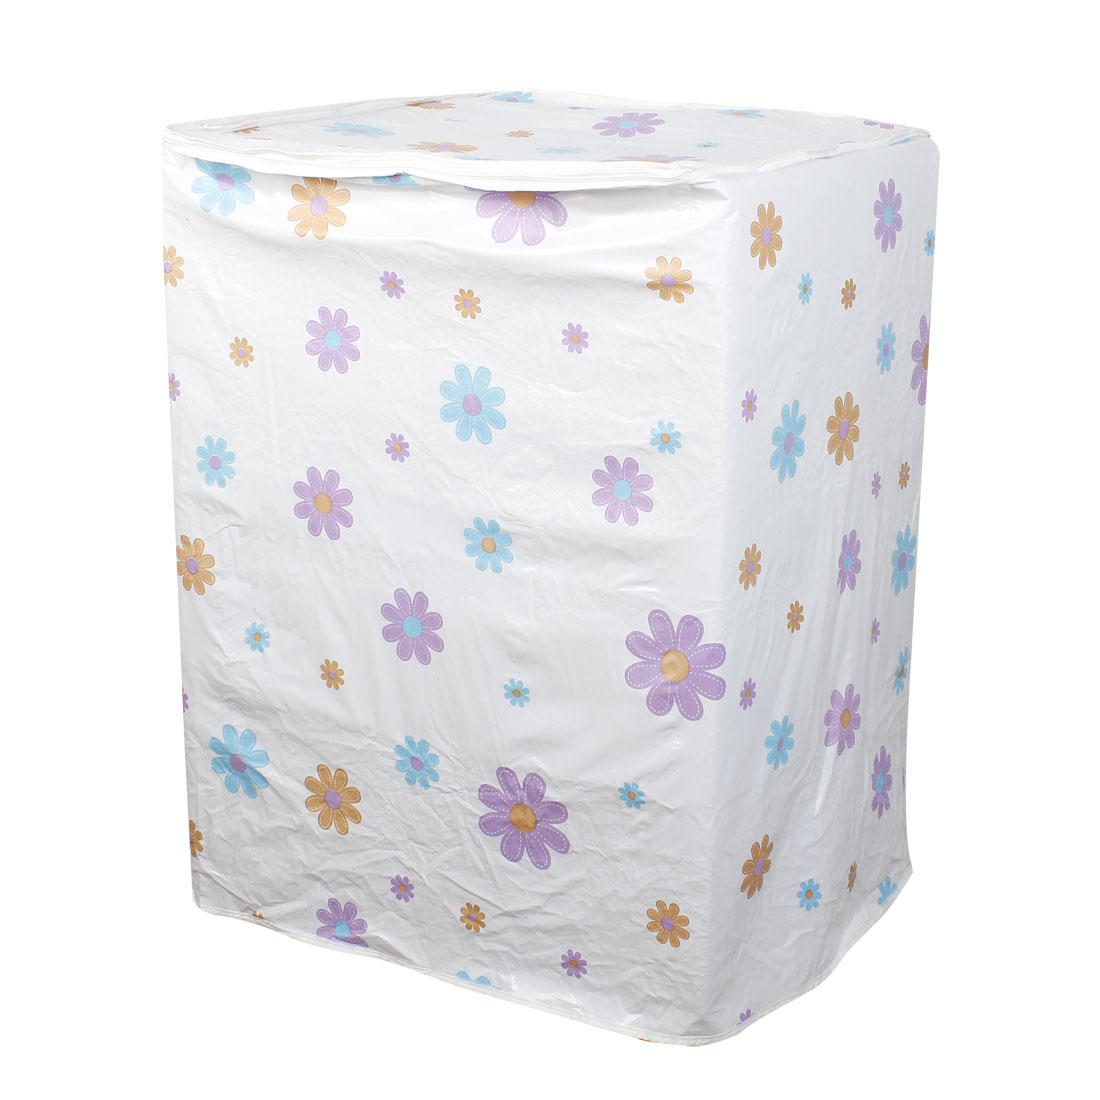 Home Colorful Flower Pattern A-Type Washing Machine Guard Cover White